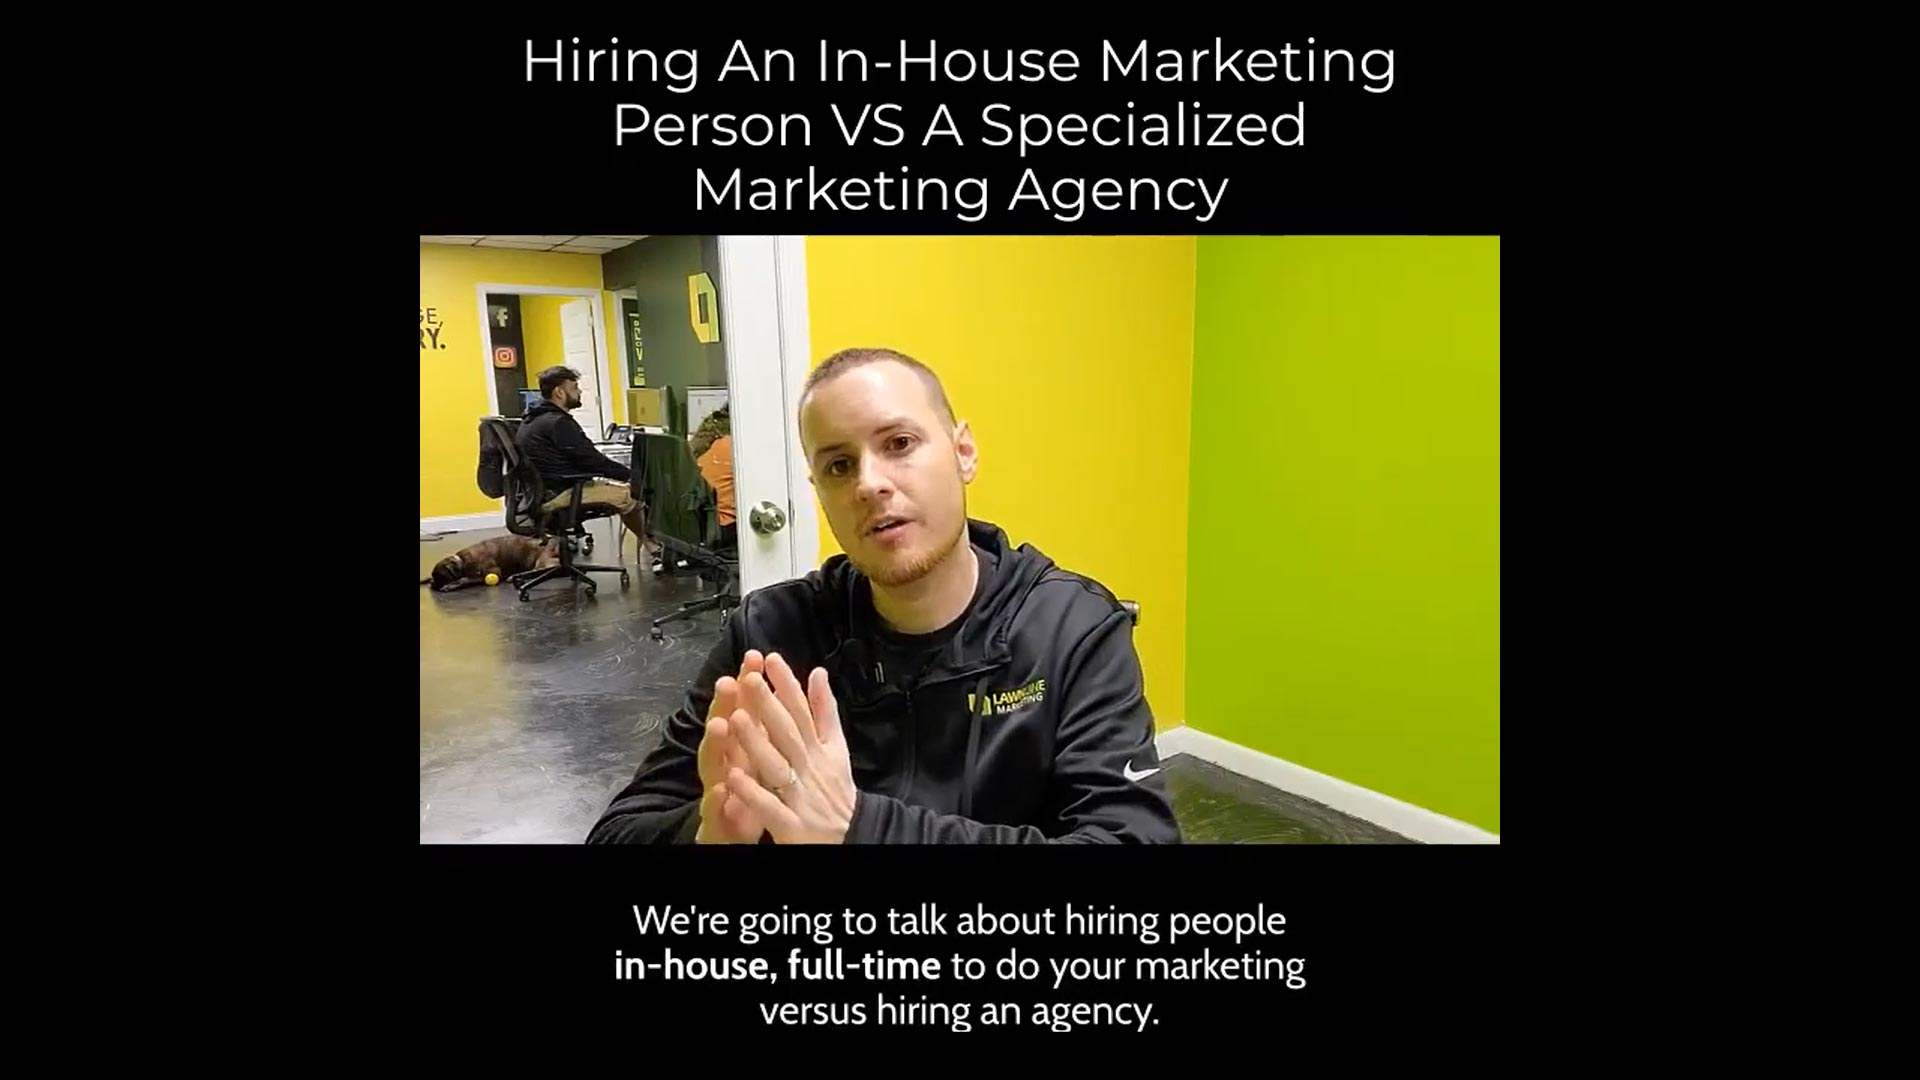 Hiring an In-House Marketing Team vs a Marketing Agency